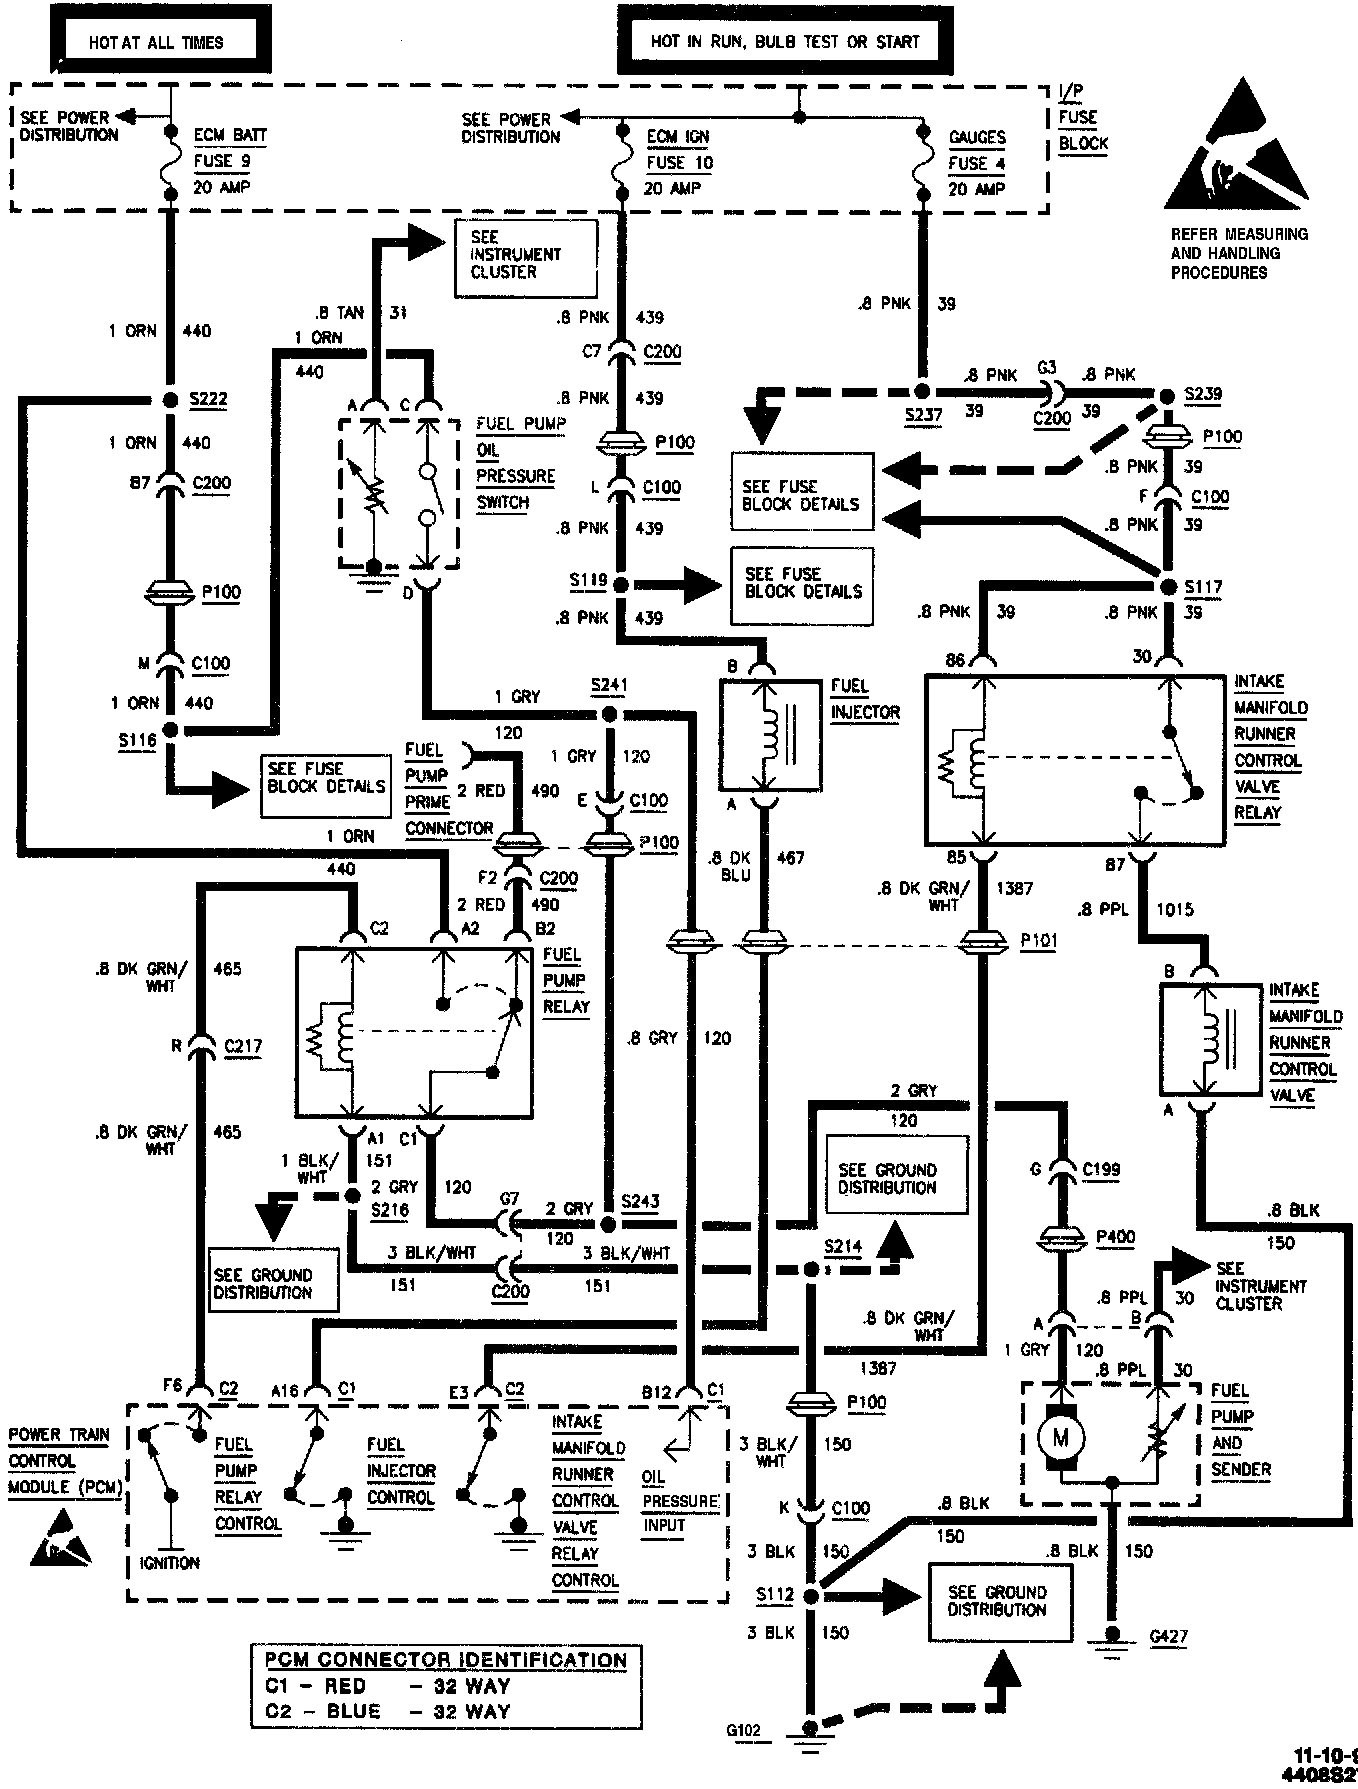 1997 chevy s10 wiring diagram my wiring diagram rh detoxicrecenze 95 chevy s10 wiring diagram